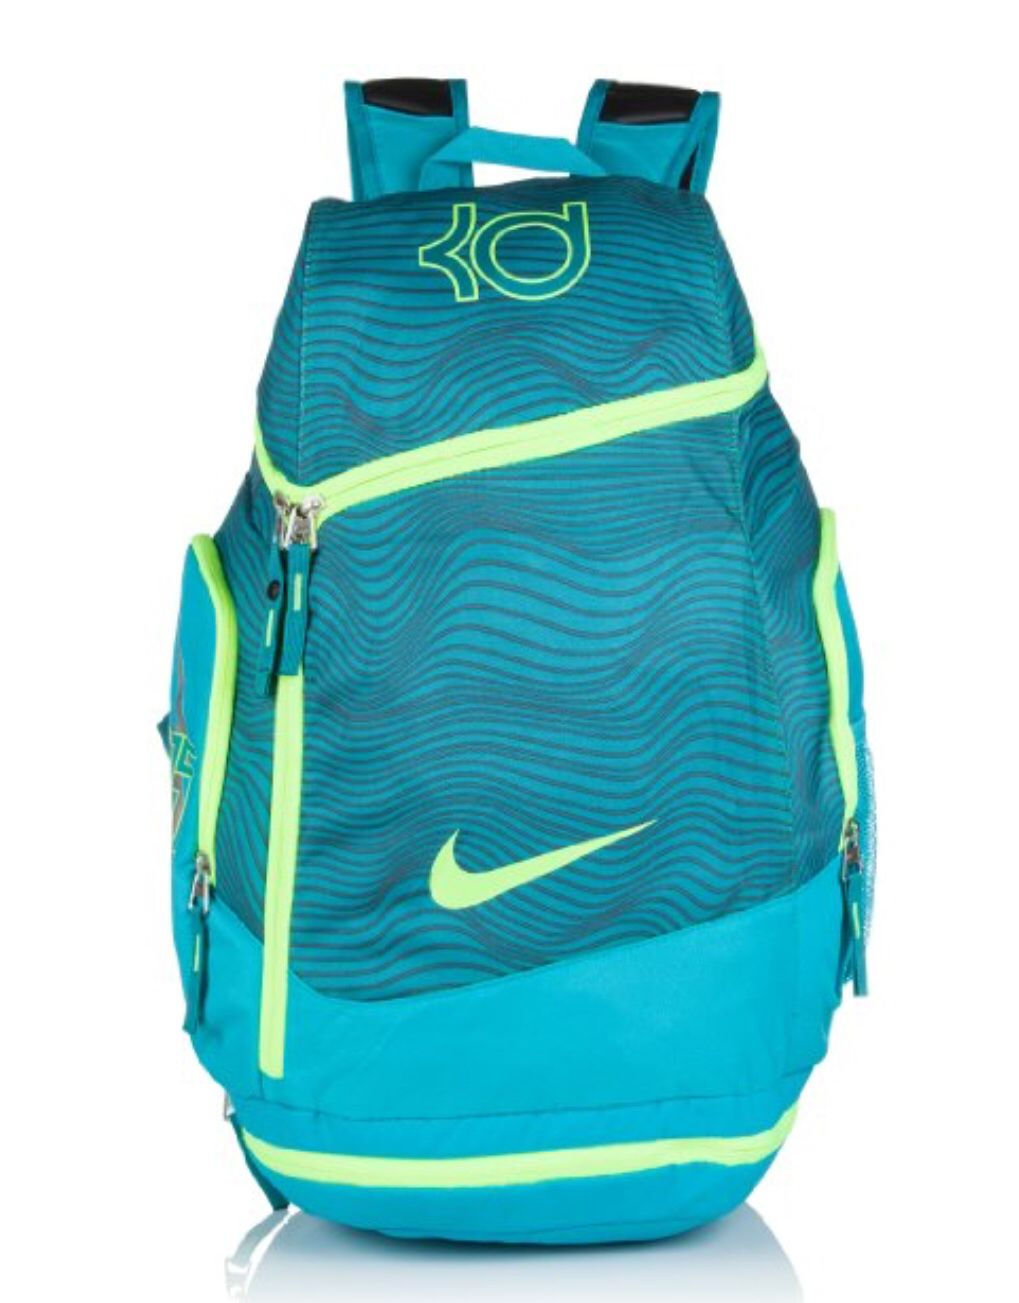 2ef61eade130 nike kd backpack